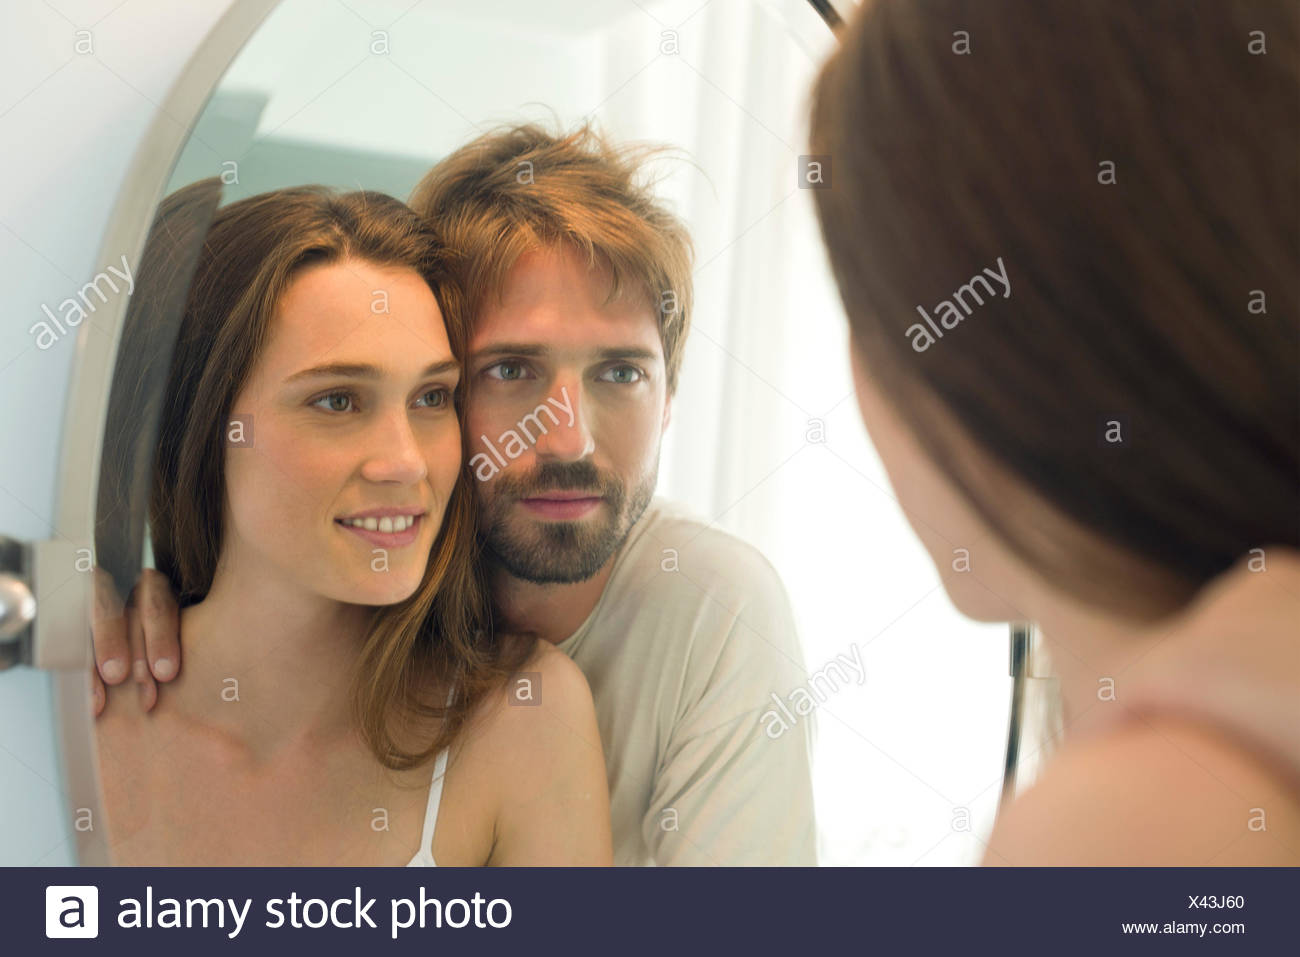 Couple looking in bathroom mirror together - Stock Image